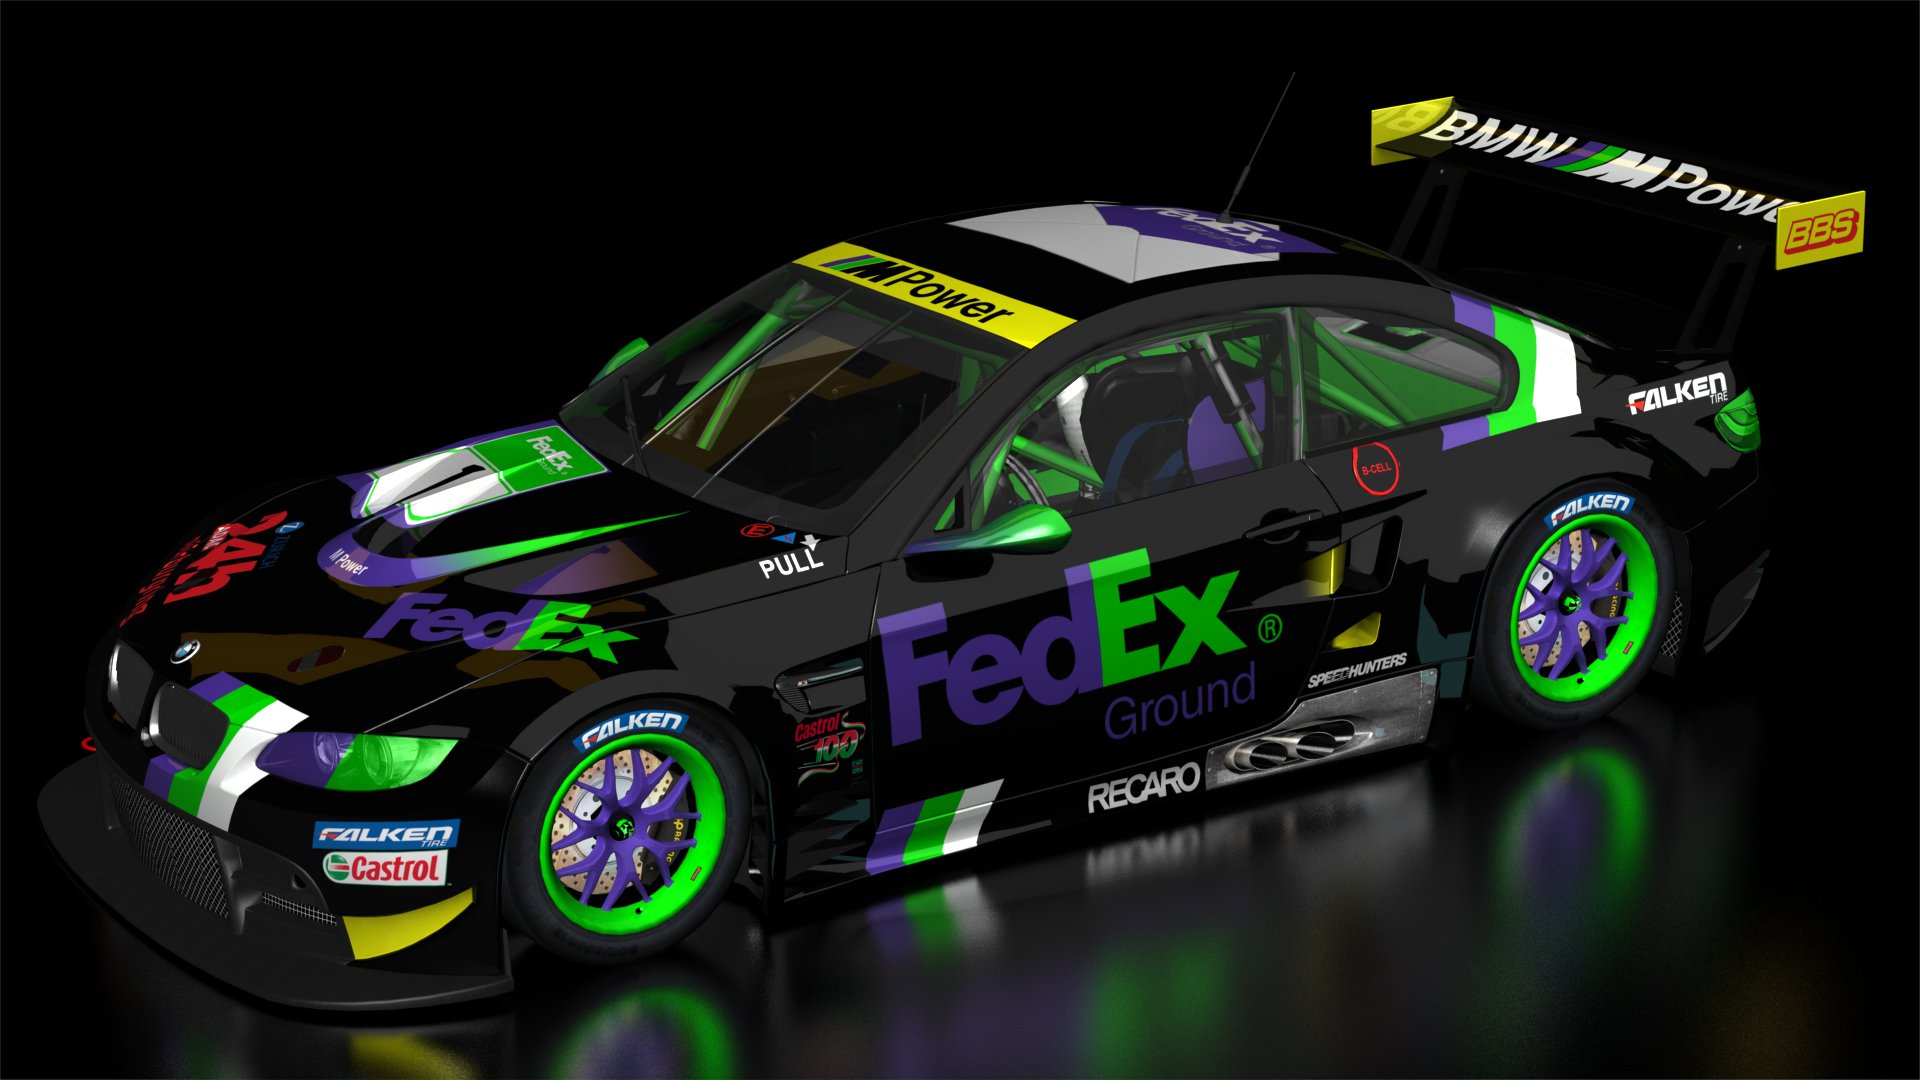 BMW GT2 Fedex Racing Team + Livery | RaceDepartment ...